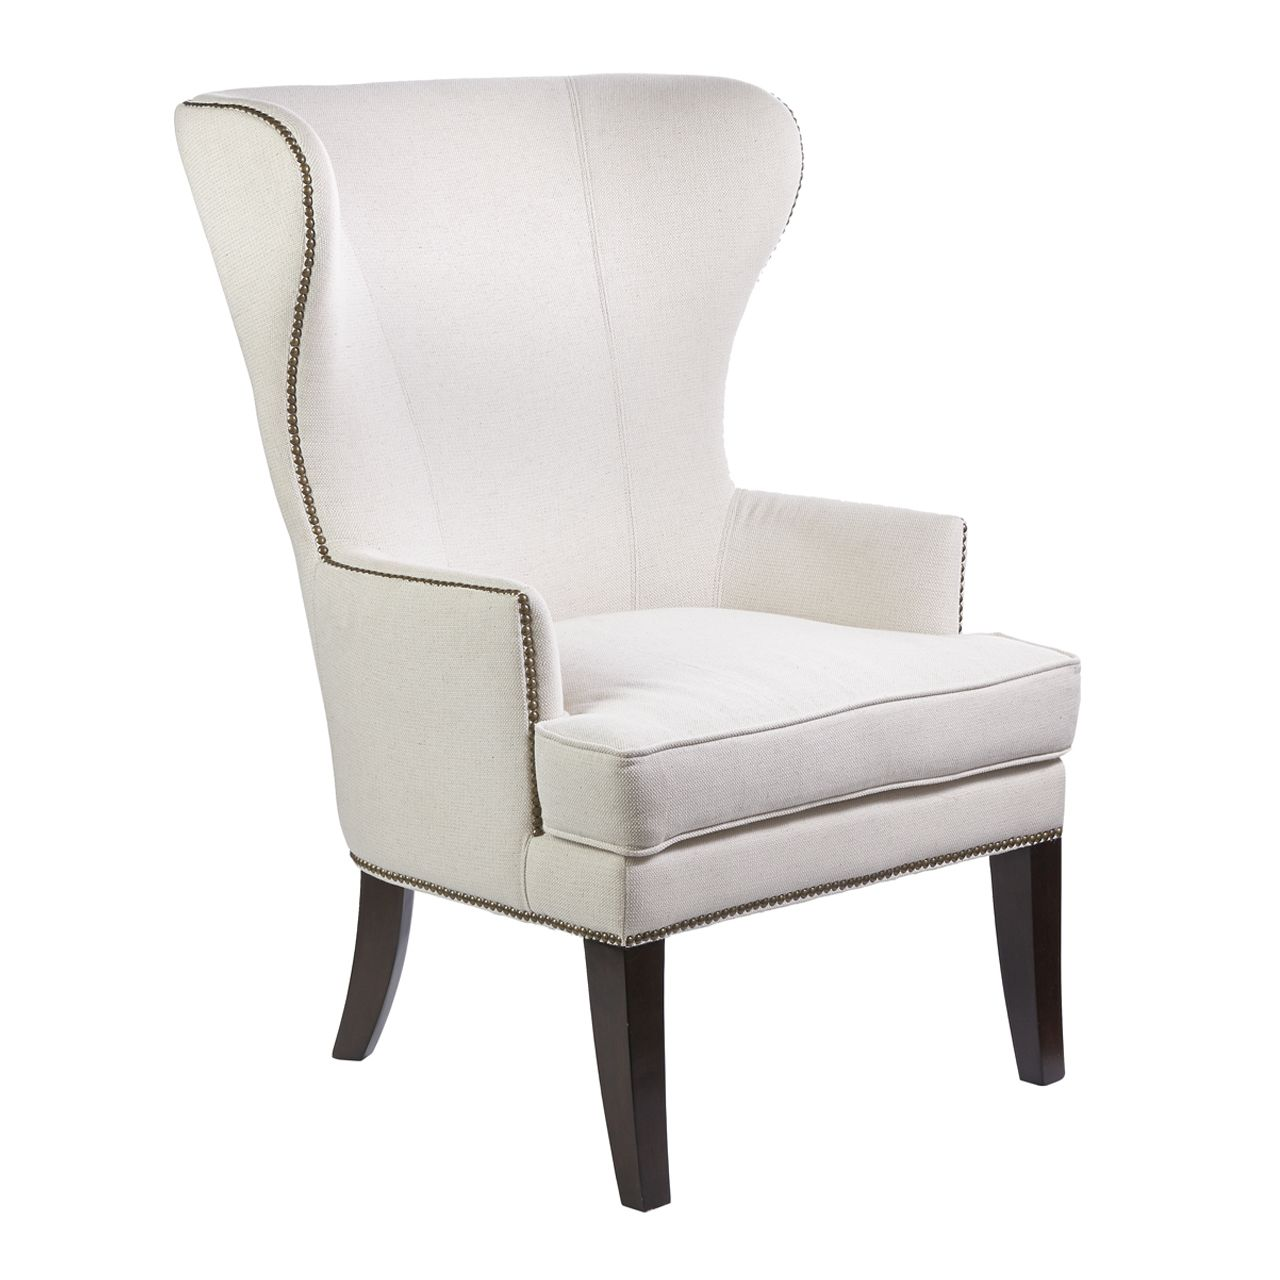 Palamino wing chair bowring wing chair living room designs home furniture decorating